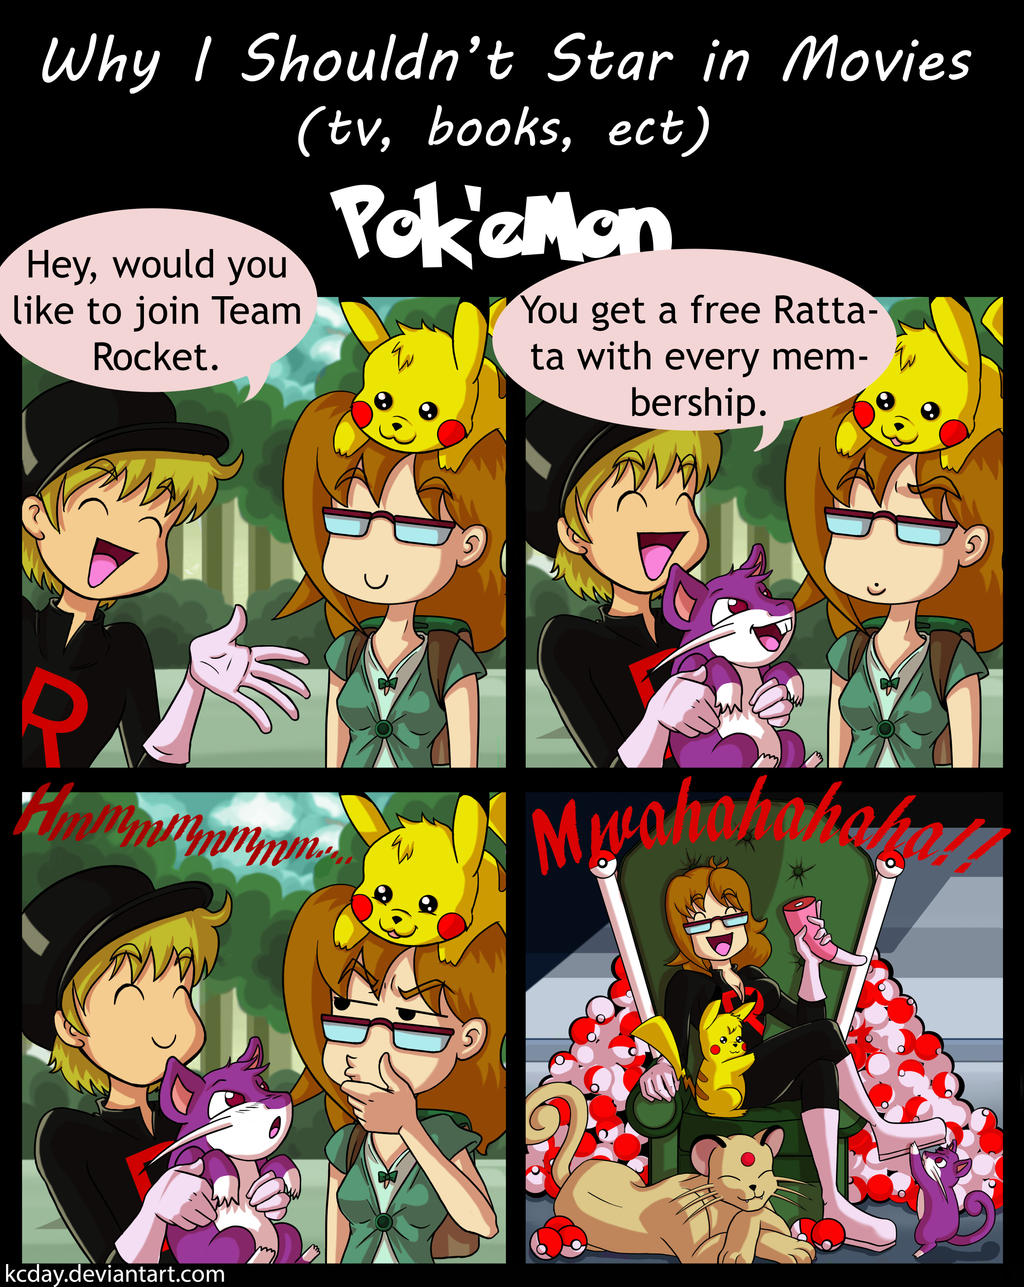 Why I Shouldn't Star in Movies: Pokemon